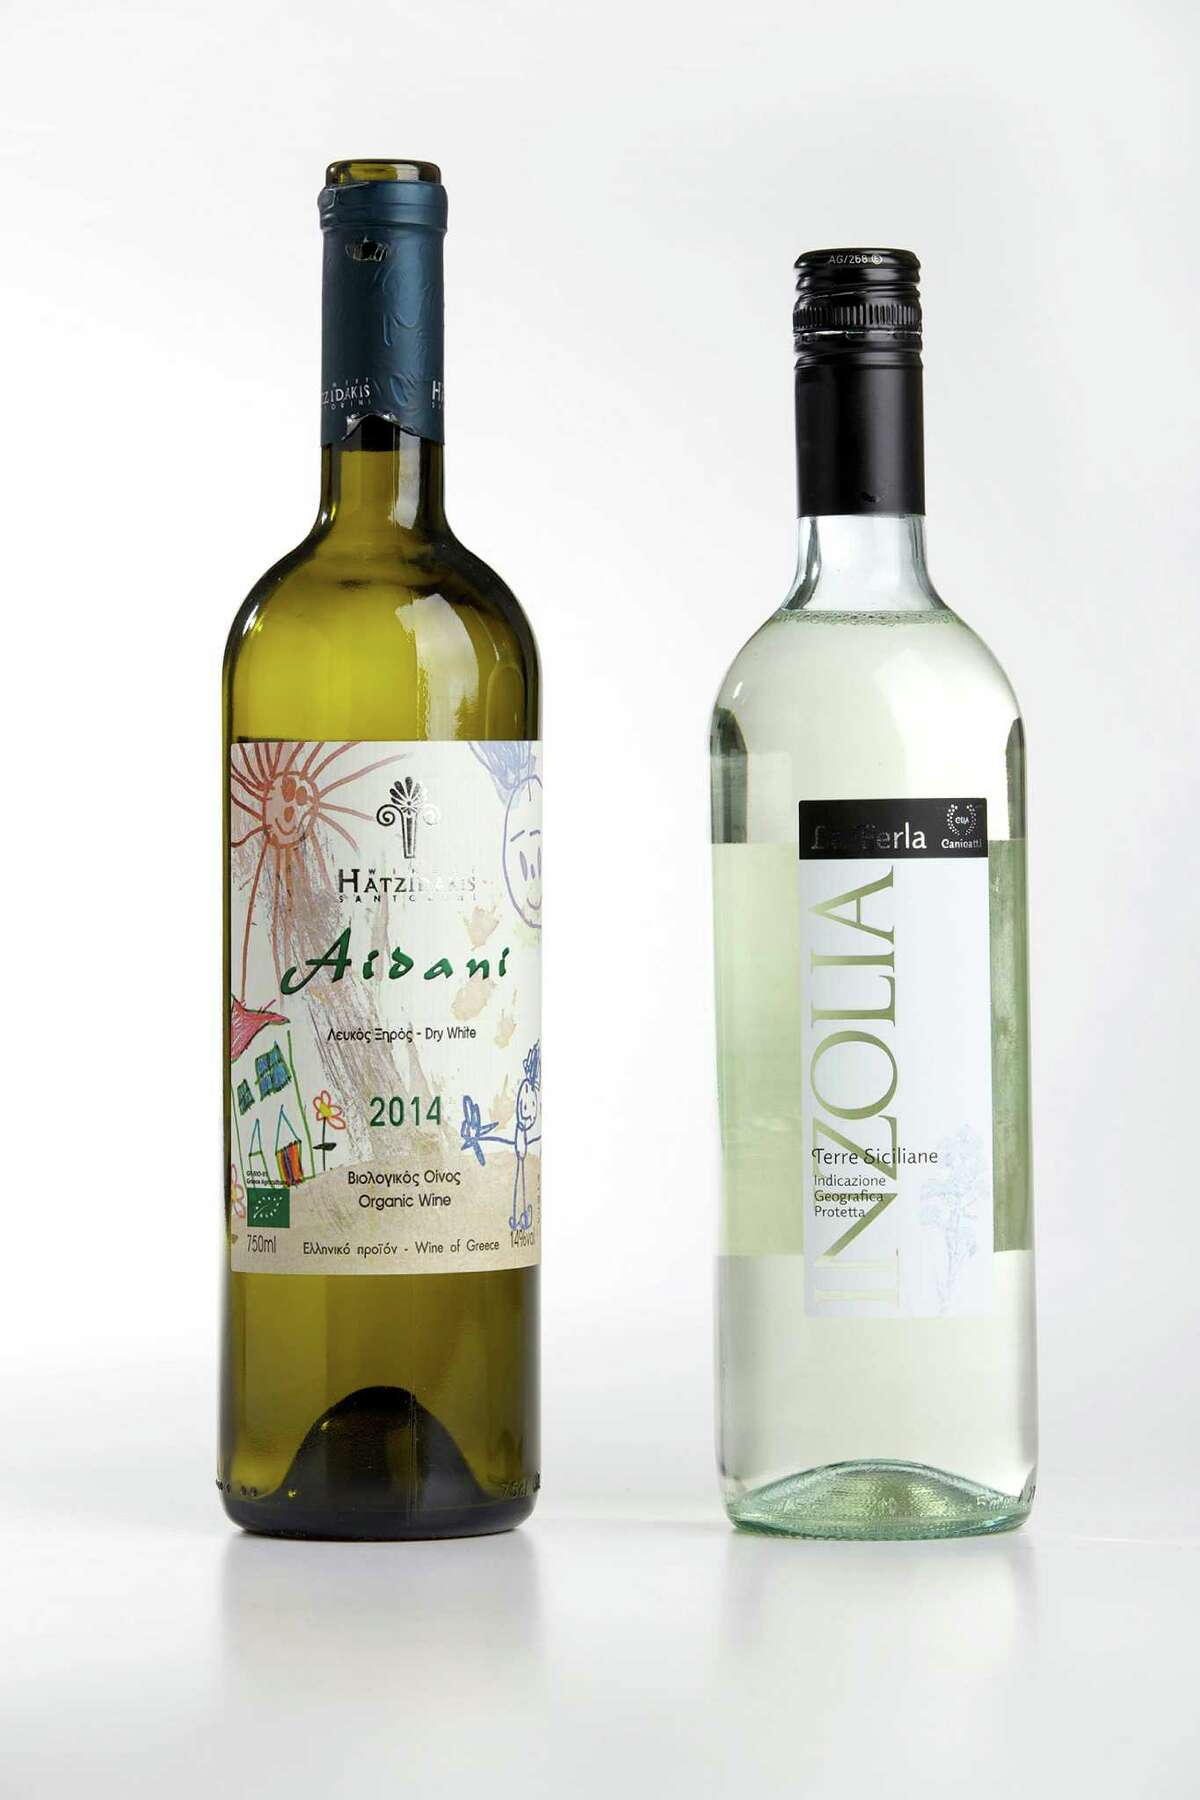 This week's recommendations include crisp white wines. Hatzidakis Aidani 2014, (left) from Cyclades, Greece; and La Ferla Inzolia 2014, from Sicily.